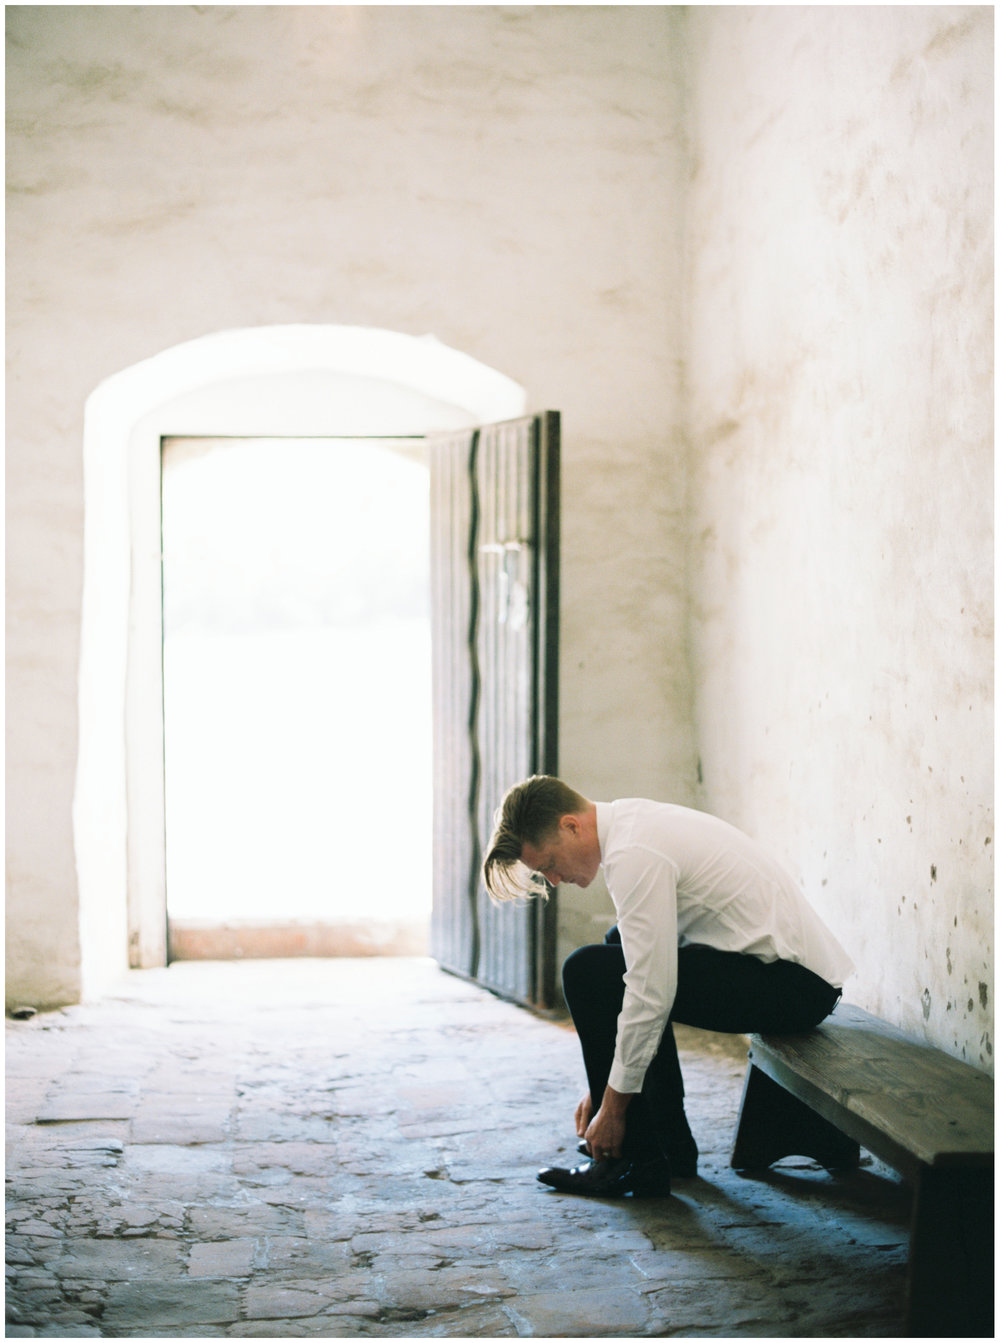 Santa_Barbara_Wedding_Photographer_Pinnel_Photography_La_Purisima_Mission-005.jpg